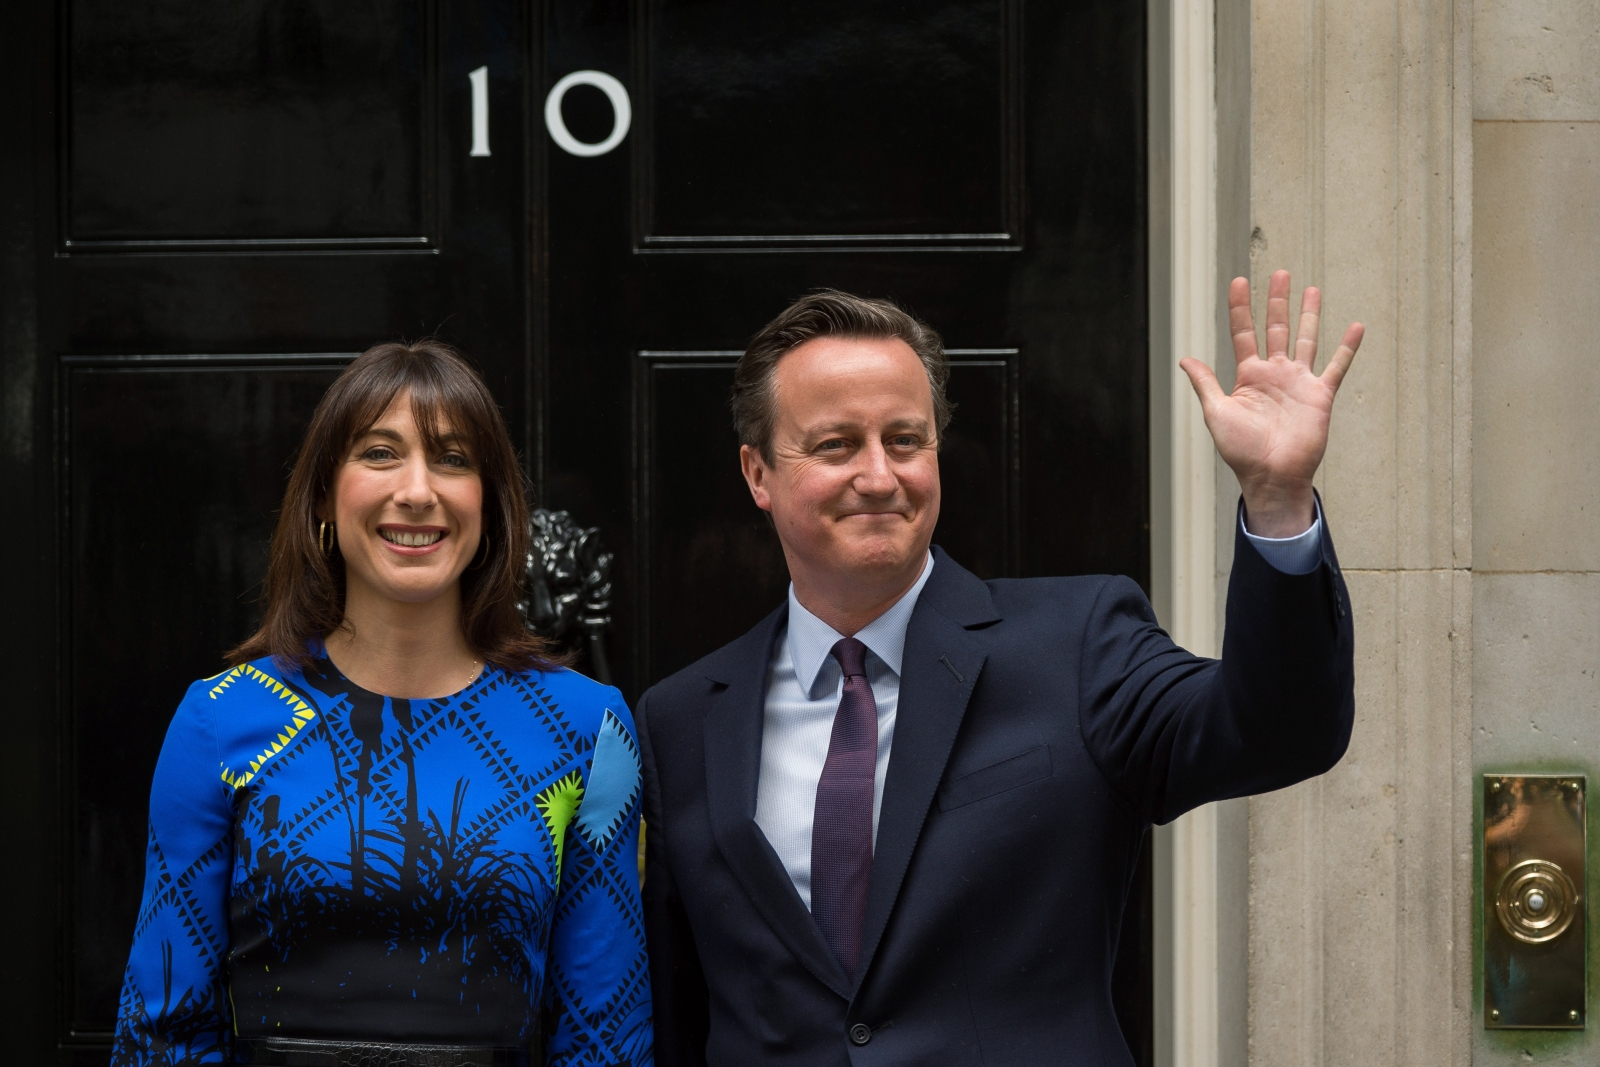 Election 2015 Samantha Cameron S Re Entry To Number 10